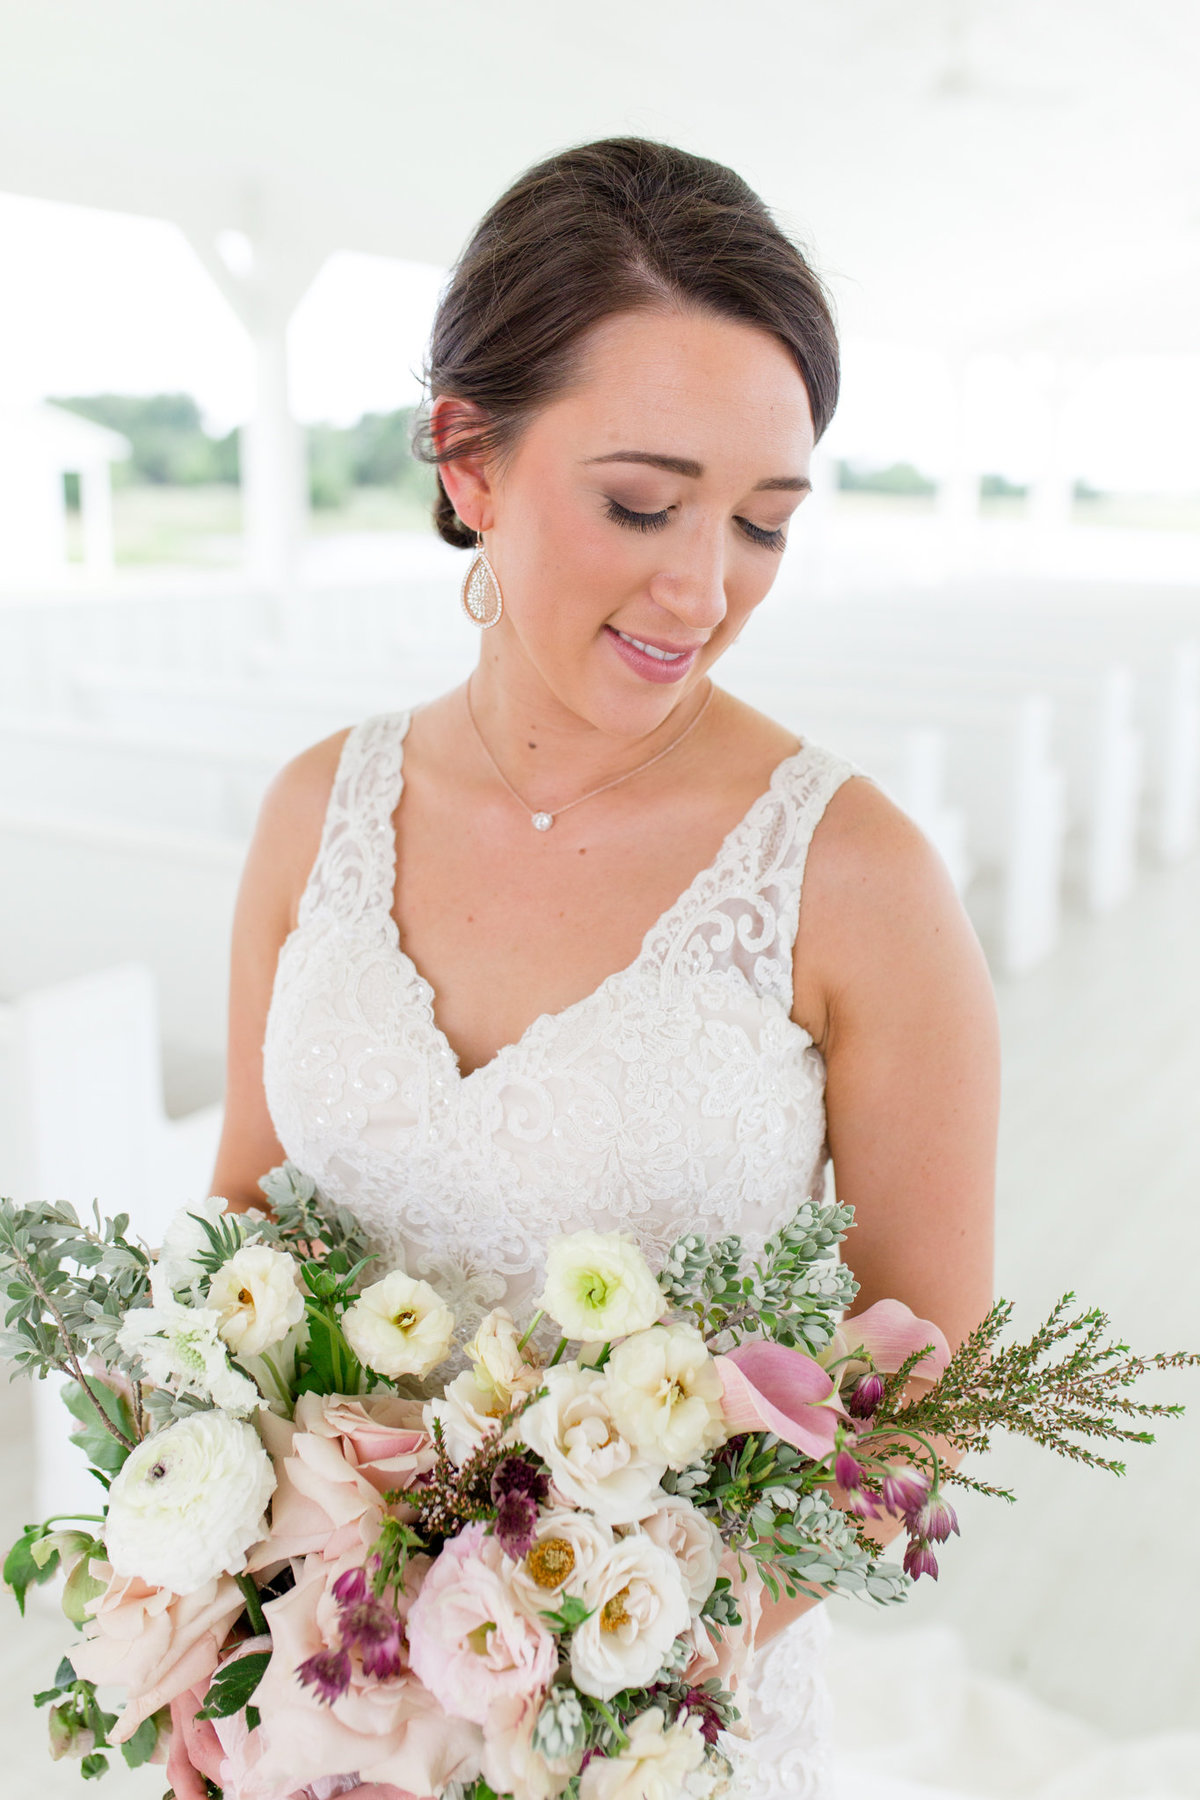 Grand Ivory Wedding| Dallas, Texas | DFW Wedding Photographer | Sami Kathryn Photography-50